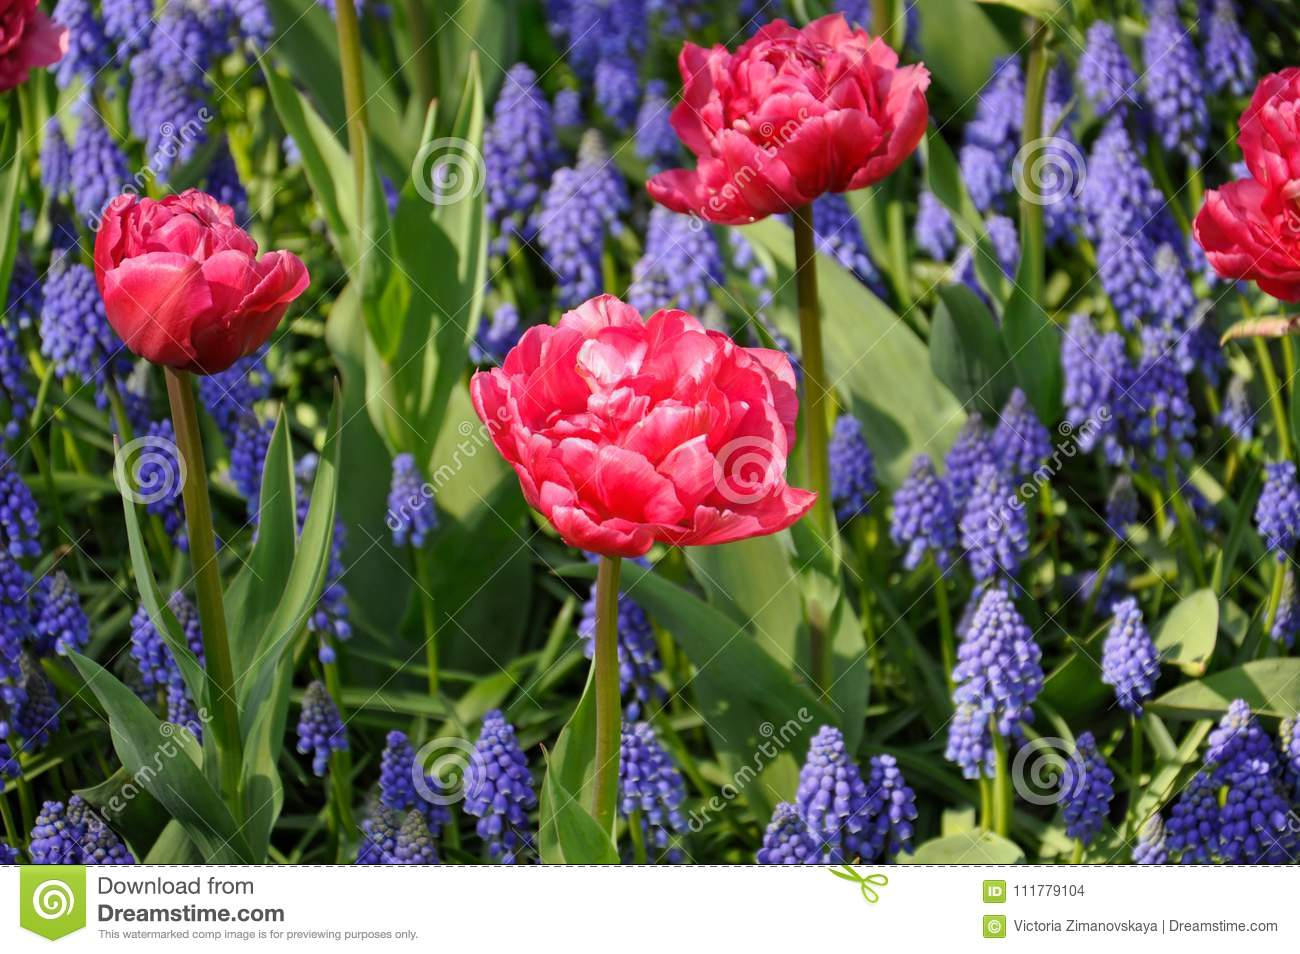 Background grape hyacinth Muscari and pink tulips flowering. Macro of blue Muscari flower meadow